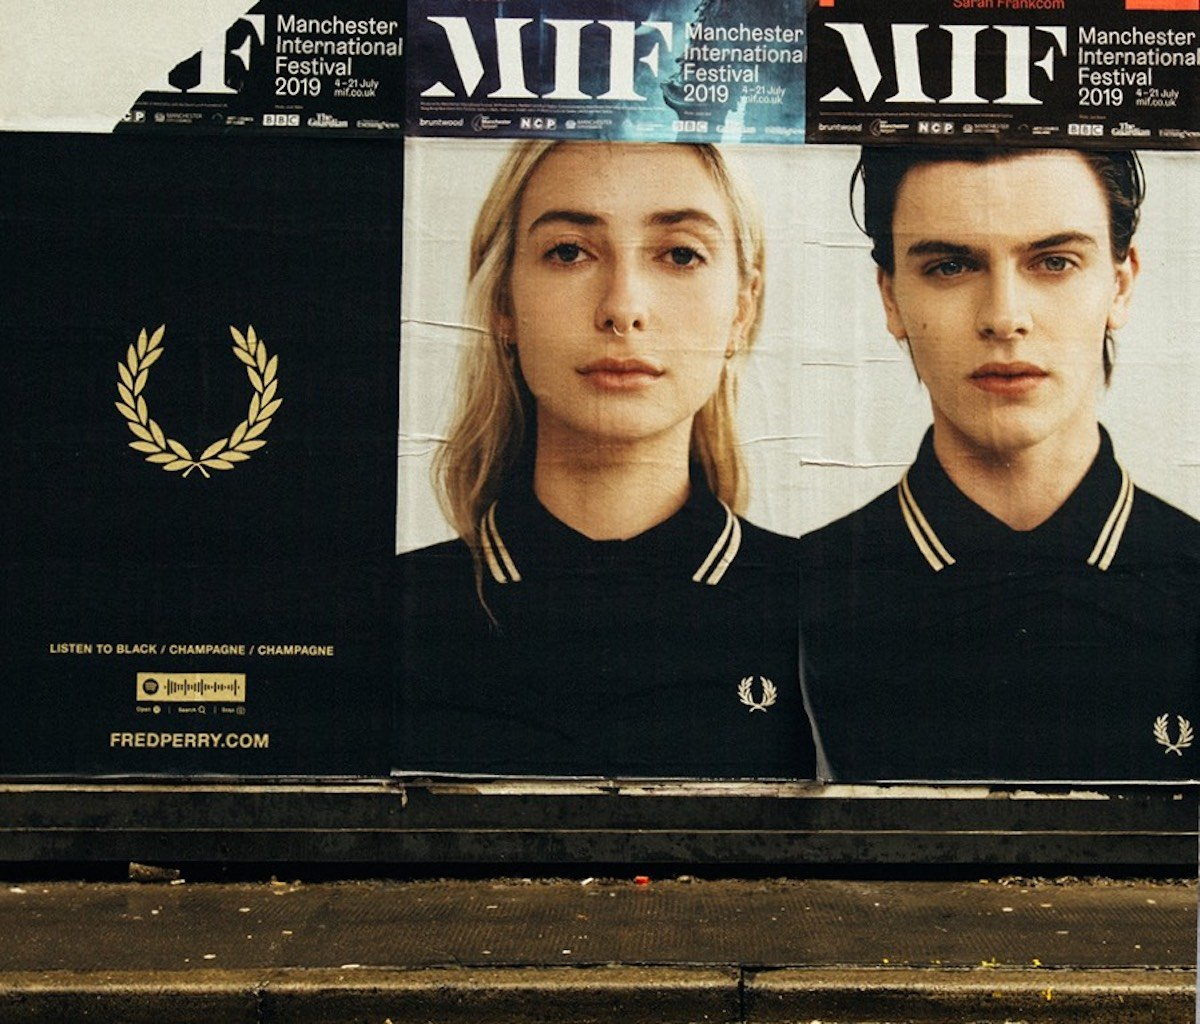 Plakatkampagne von FP in Manchester (Foto: Fred Perry)